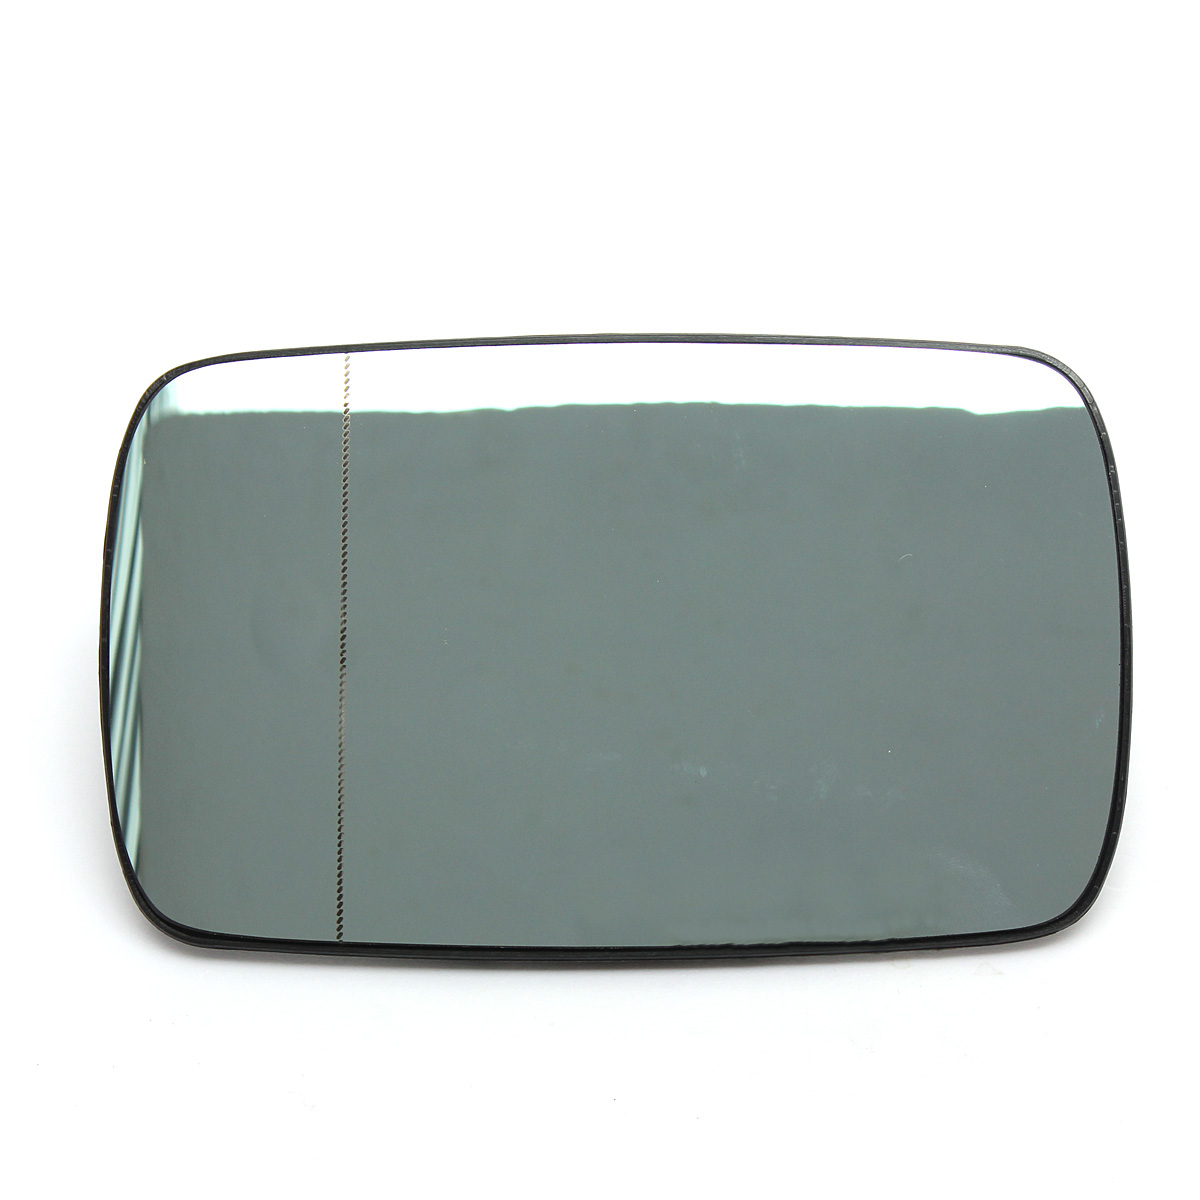 Replacement Right Blue Heated Wing Car Mirror Glass For BMW 3 Series E46 1998-2005